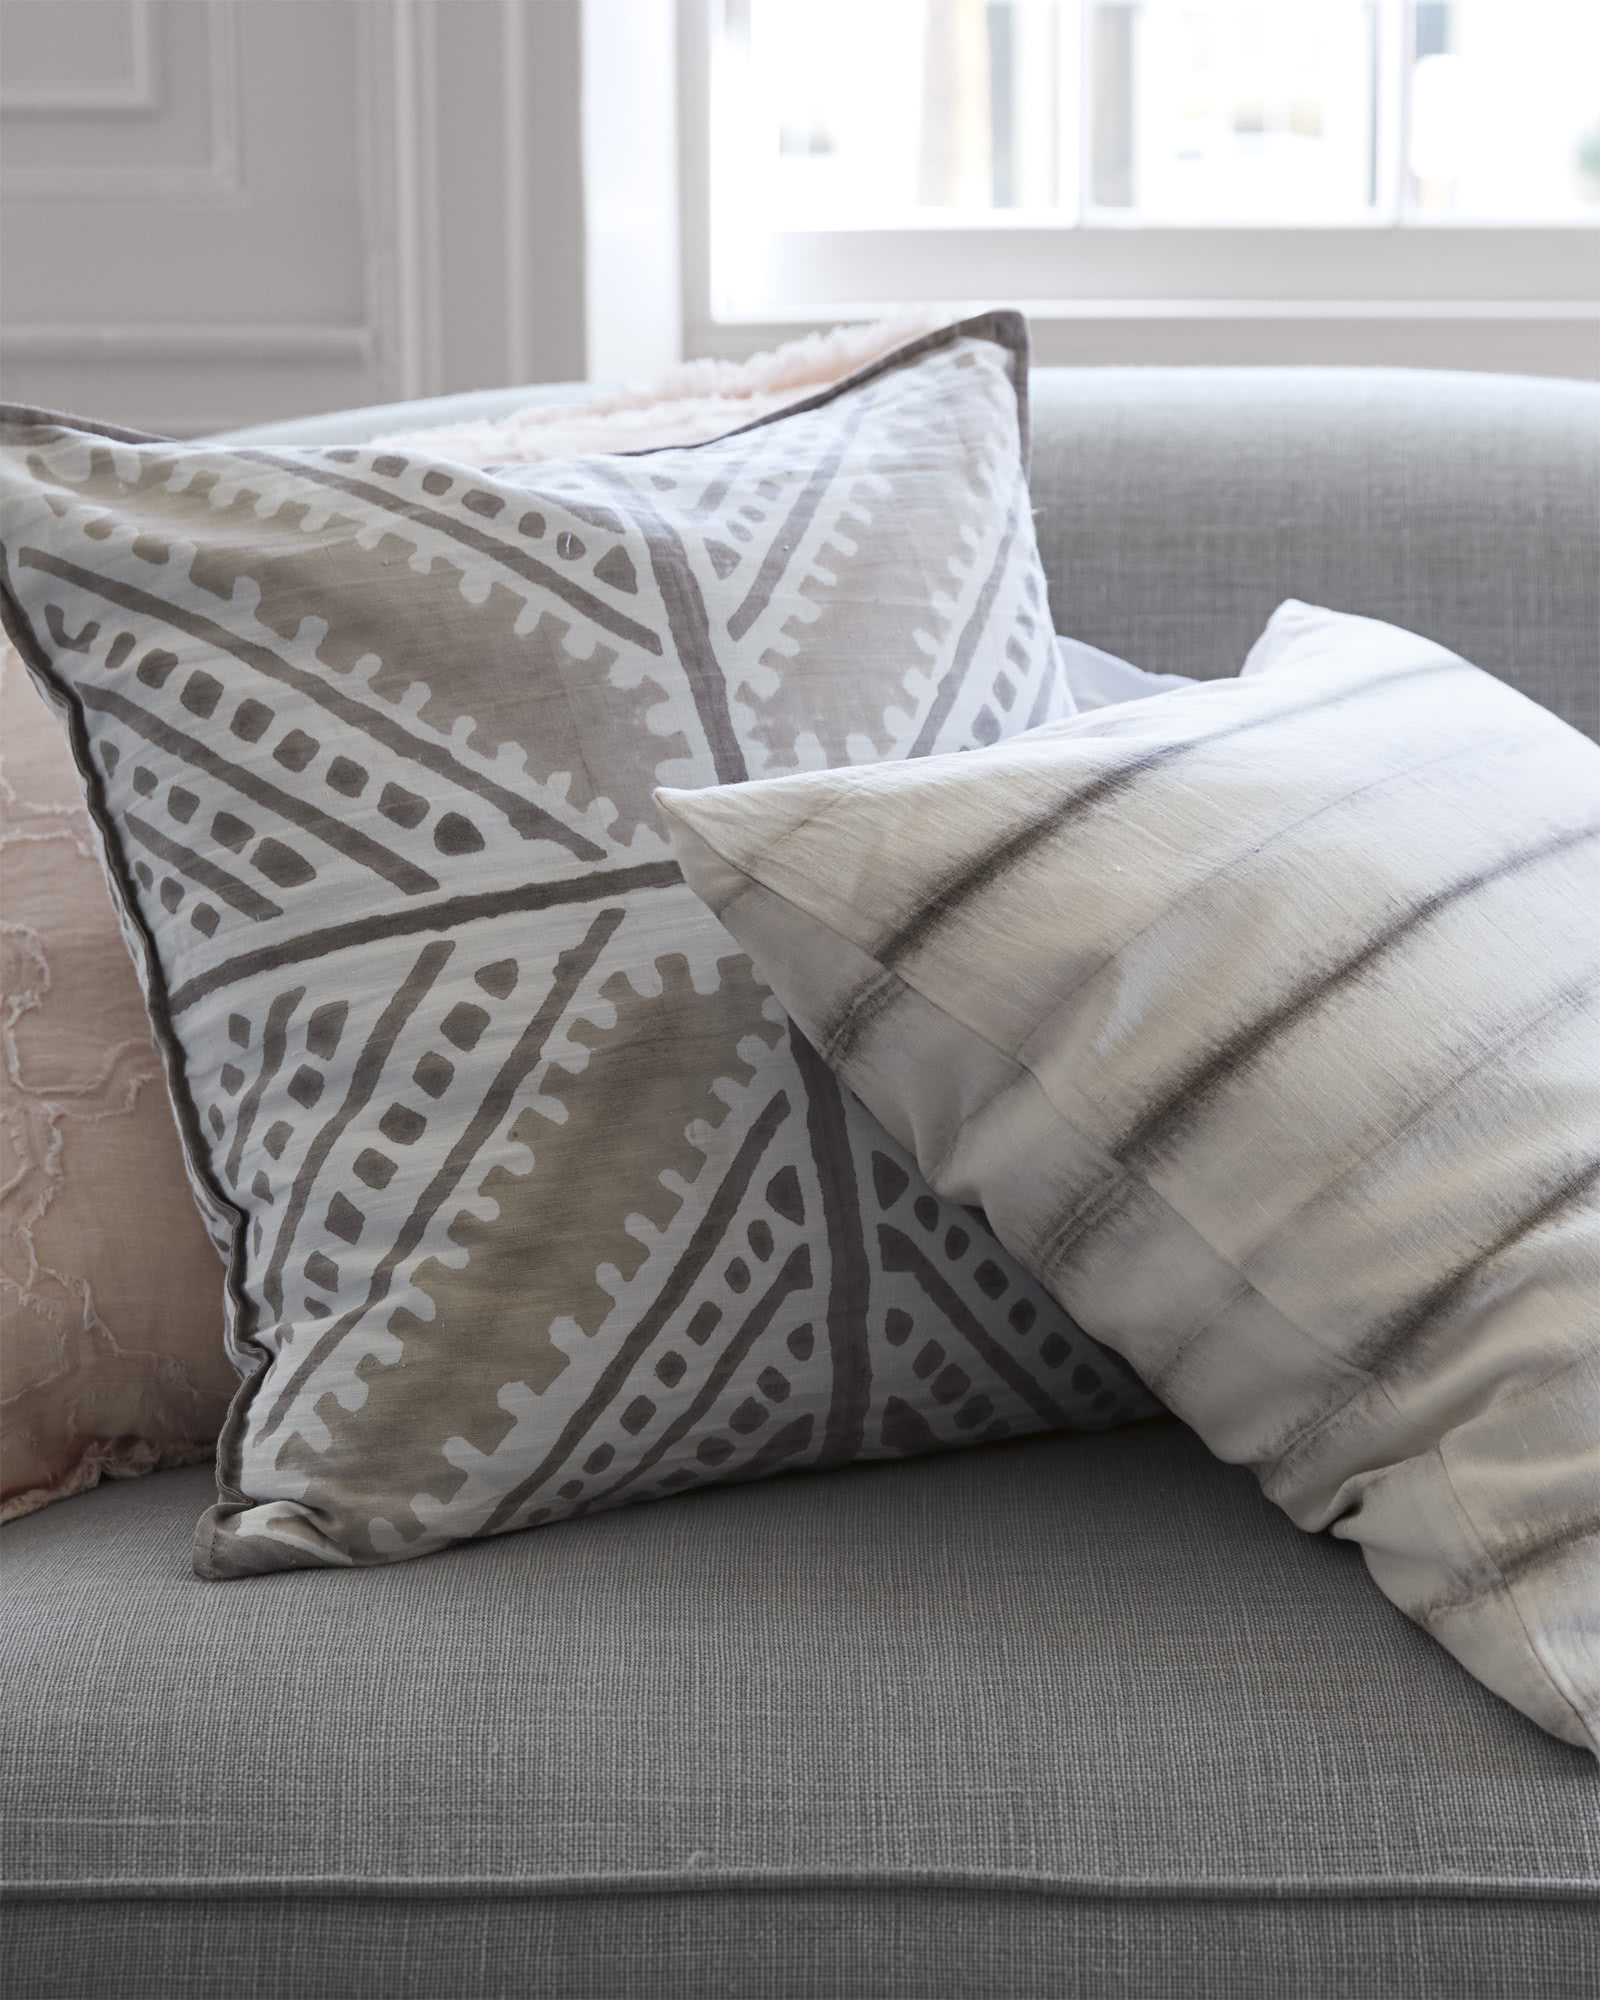 Sienna Tile Pillow Cover Serena & Lily